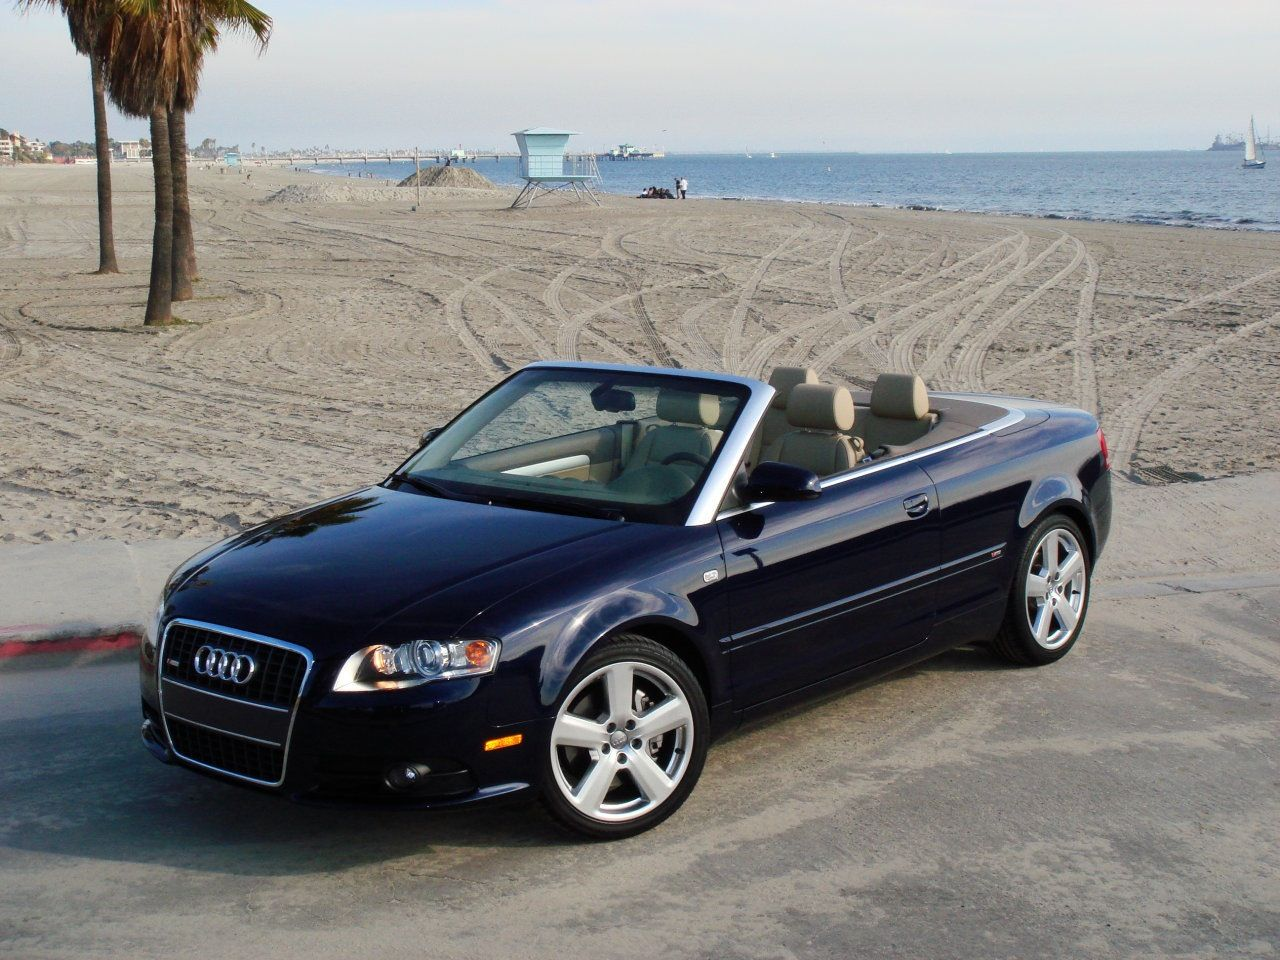 2007 Audi A4 Cabriolet | Cars that I own or have owned | Pinterest